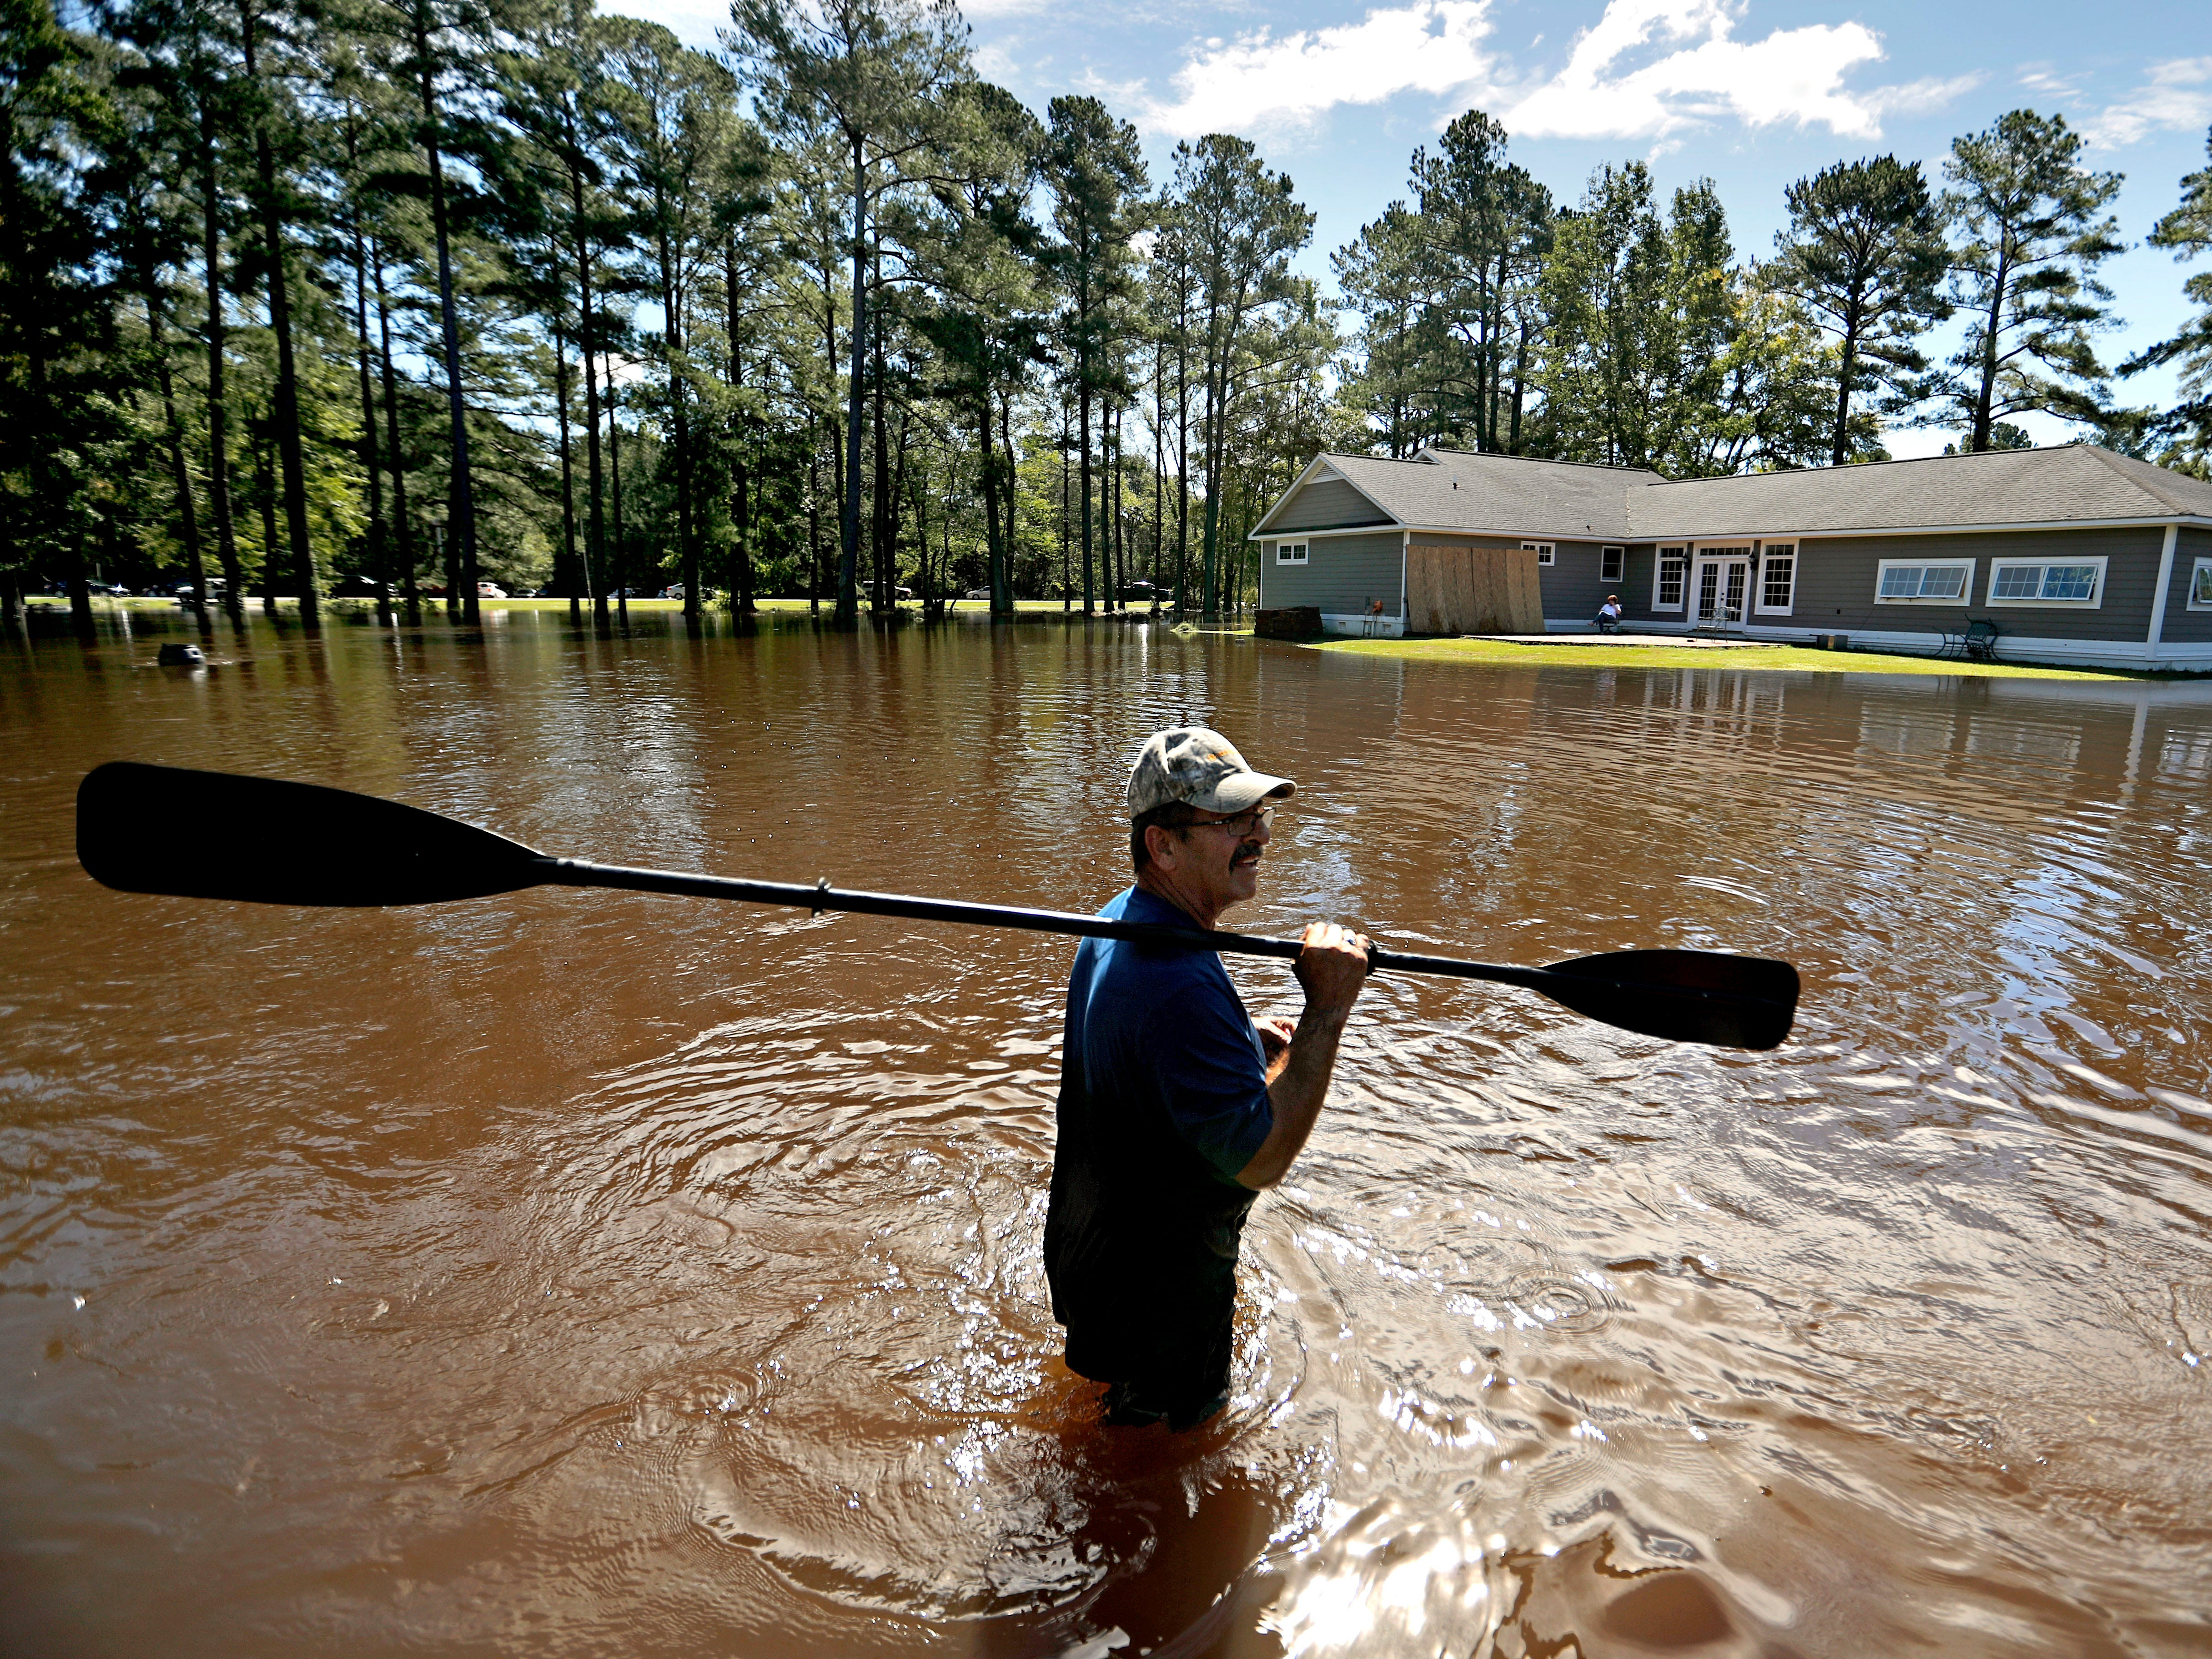 The home of Kenny Babb is surrounded by water as he retrieves a paddle that floated away while the Little River continues to rise in the aftermath of Hurricane Florence in Linden, N.C., Tuesday, Sept. 18, 2018.